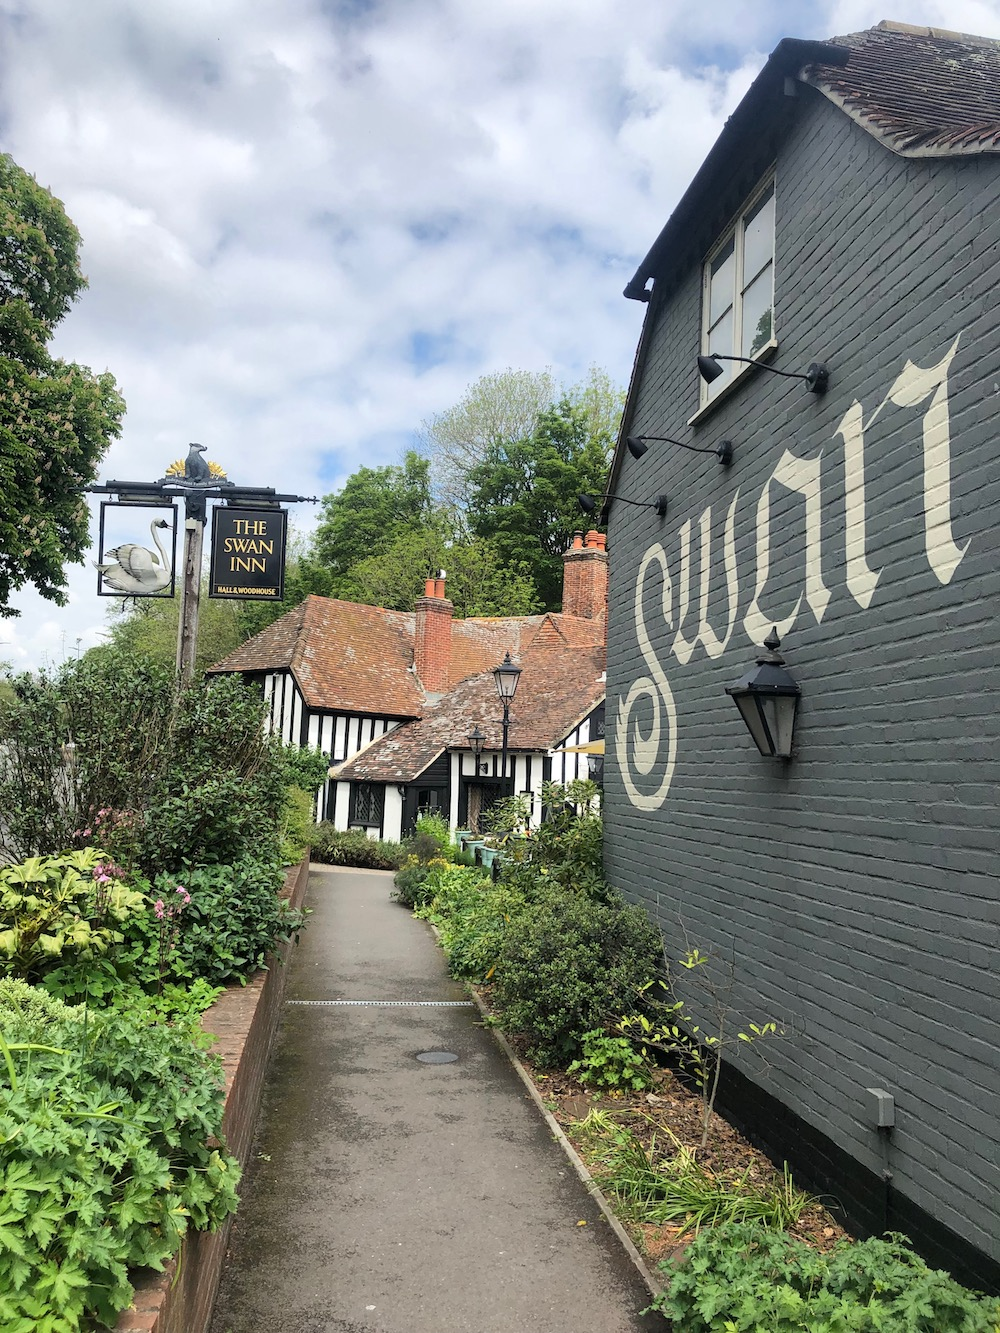 The Swan Inn From  Downton Abbey,  Lady Sybil and Tom Branson Eloping